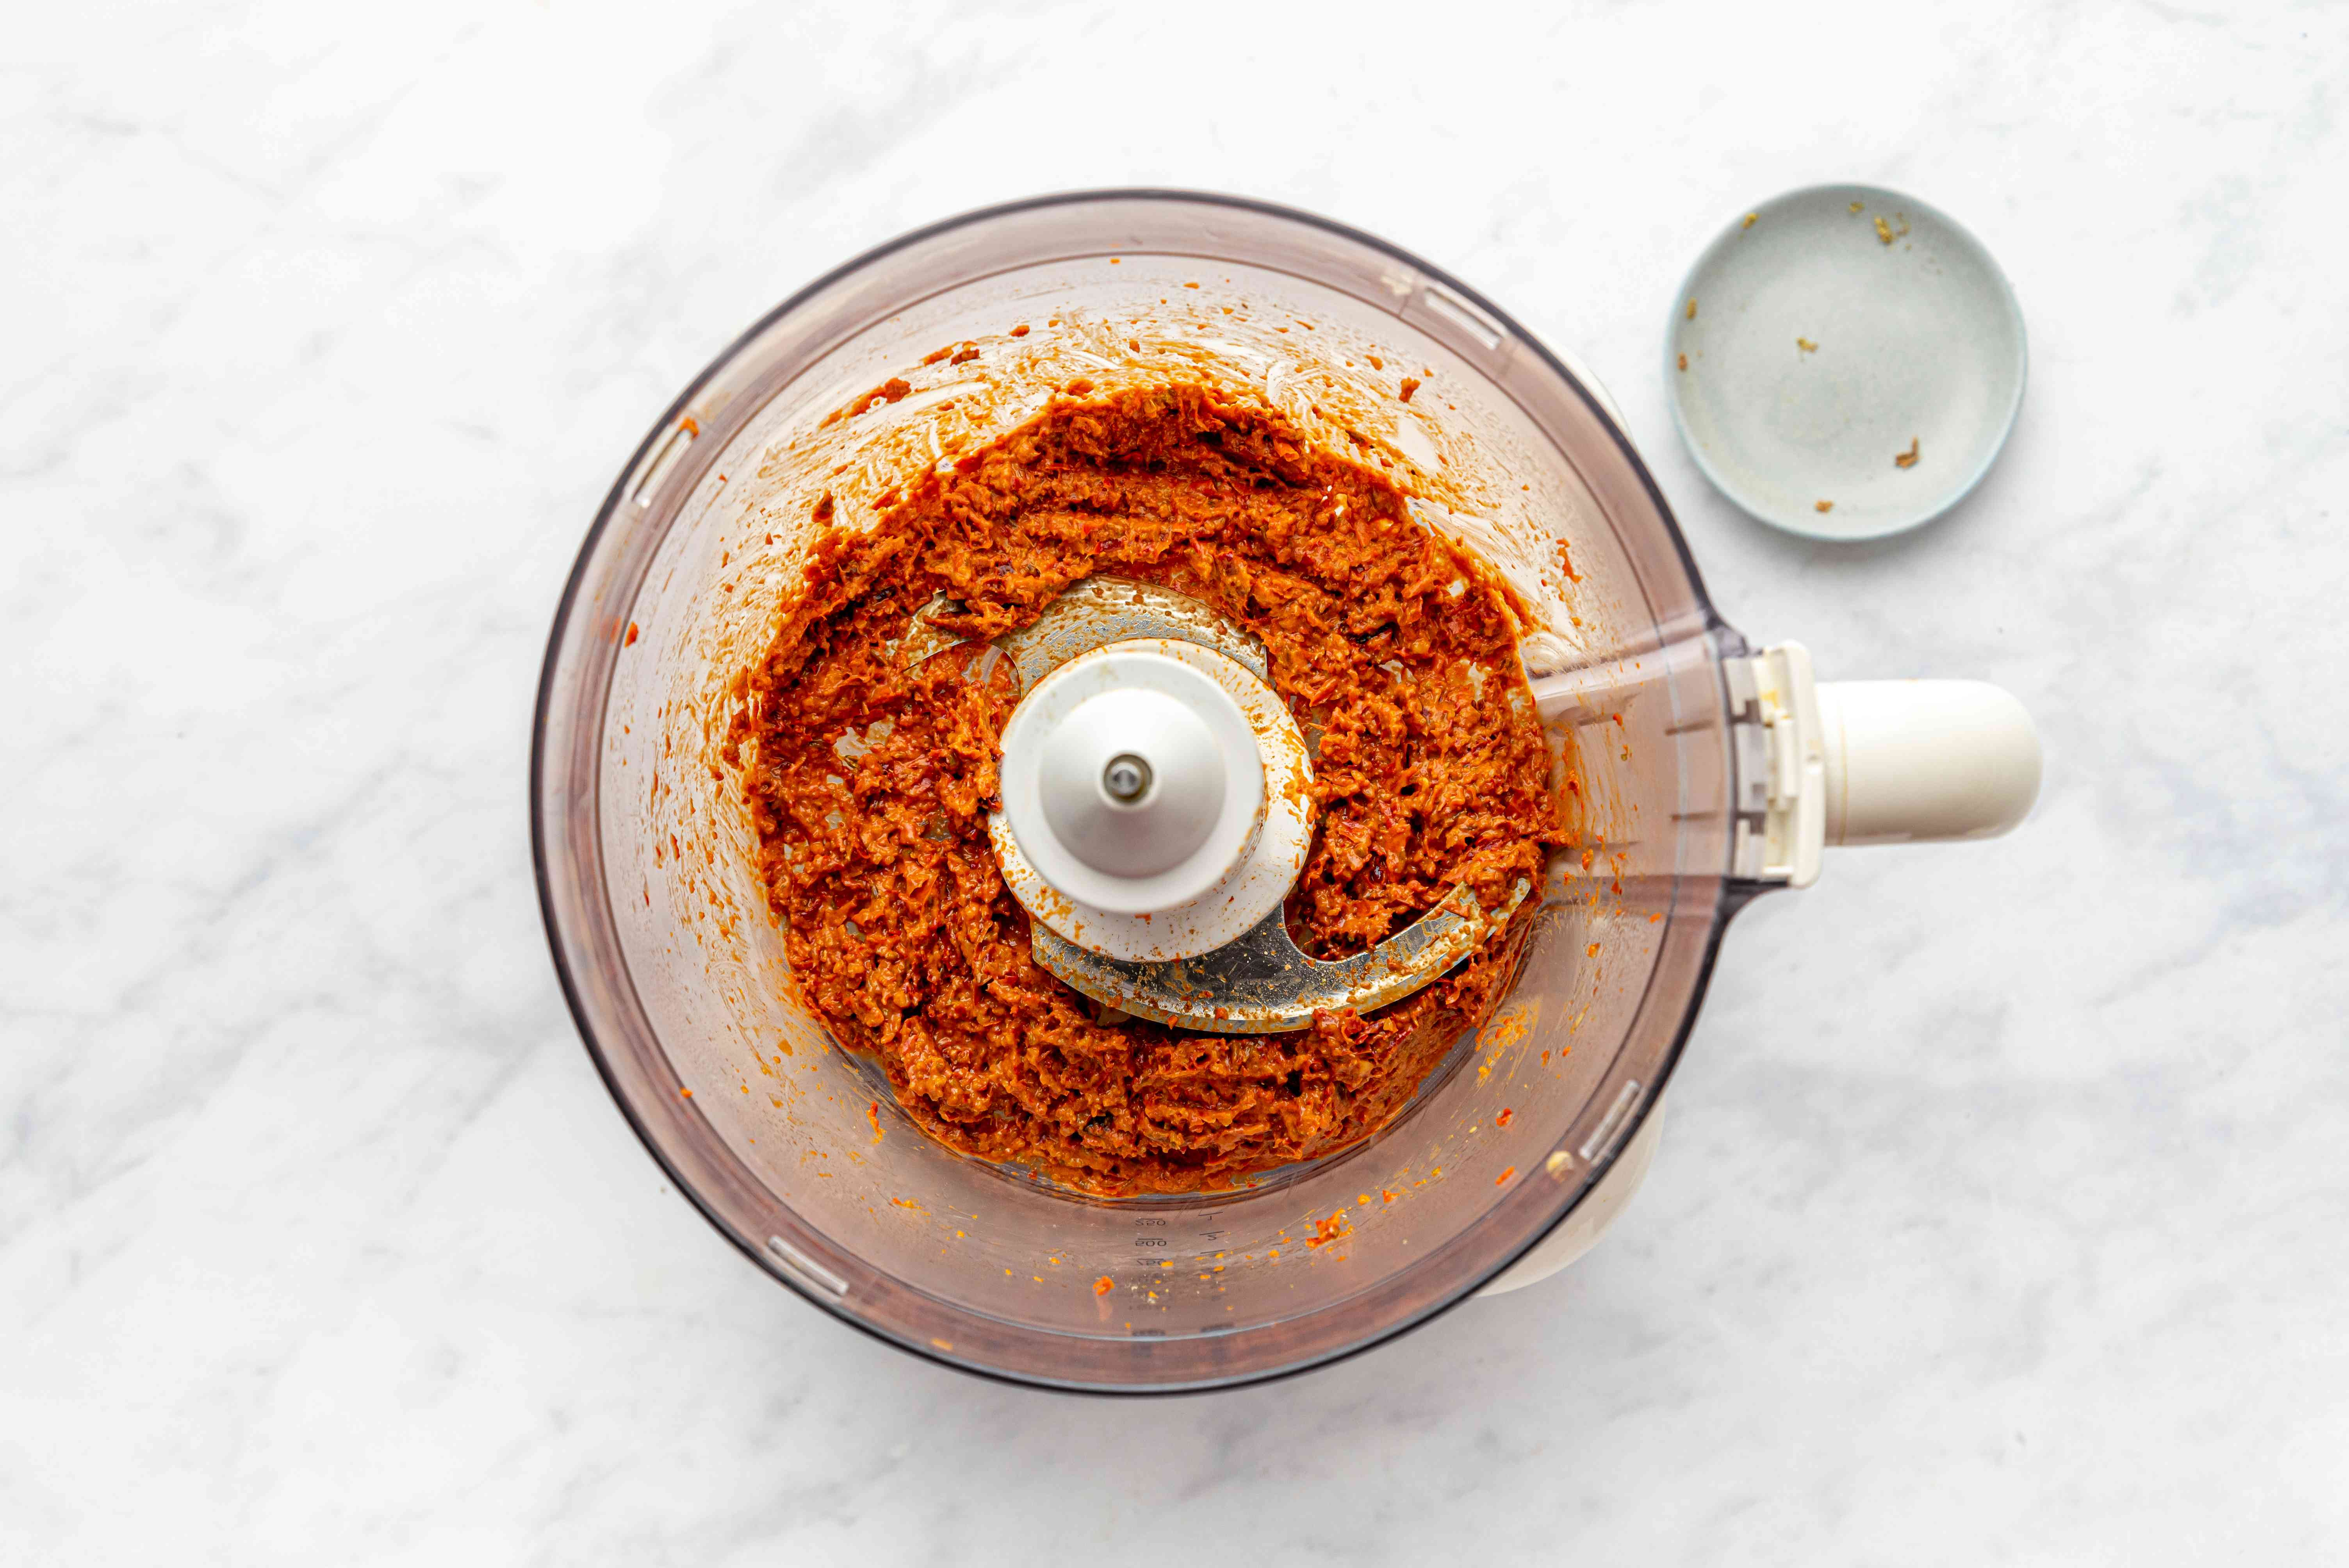 Blending chilies and spices in food processor